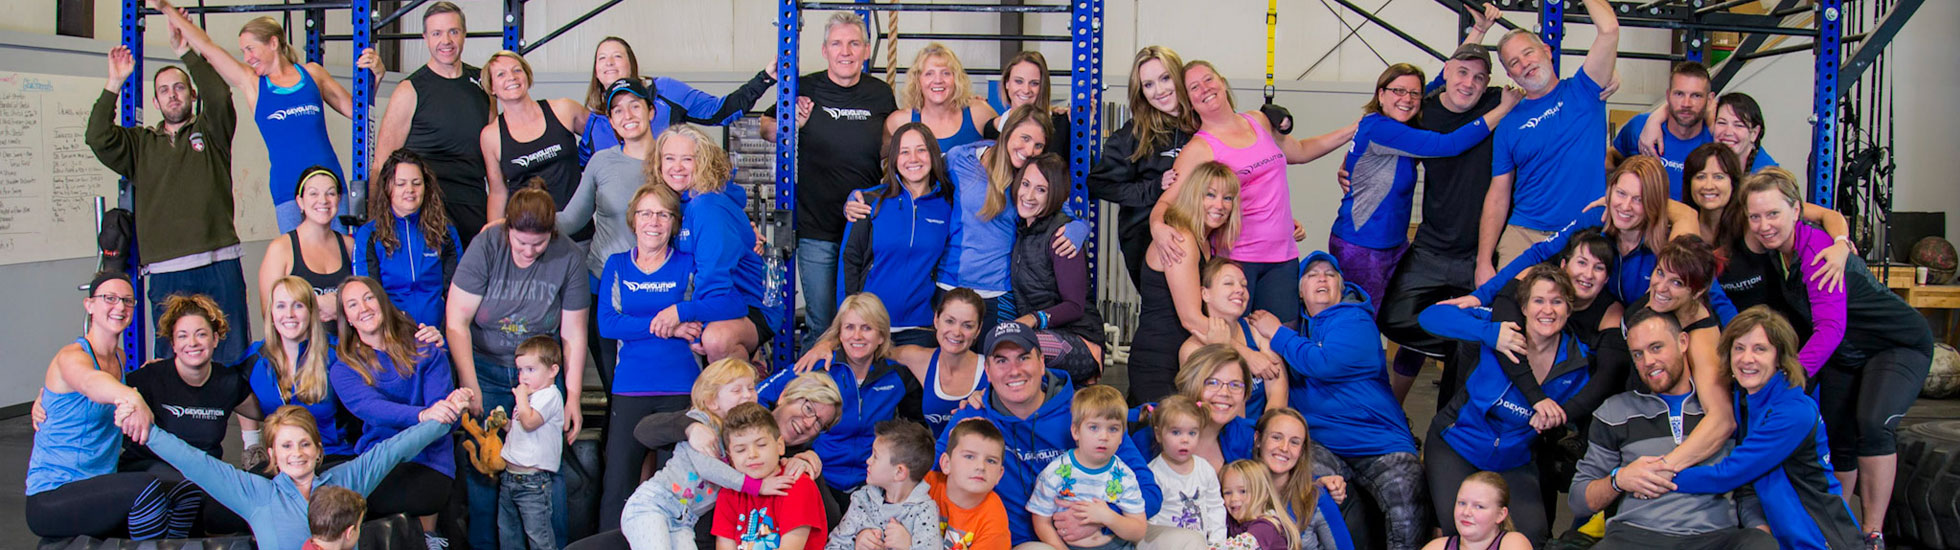 How to join GEvolution Fitness in Augusta, Maine.